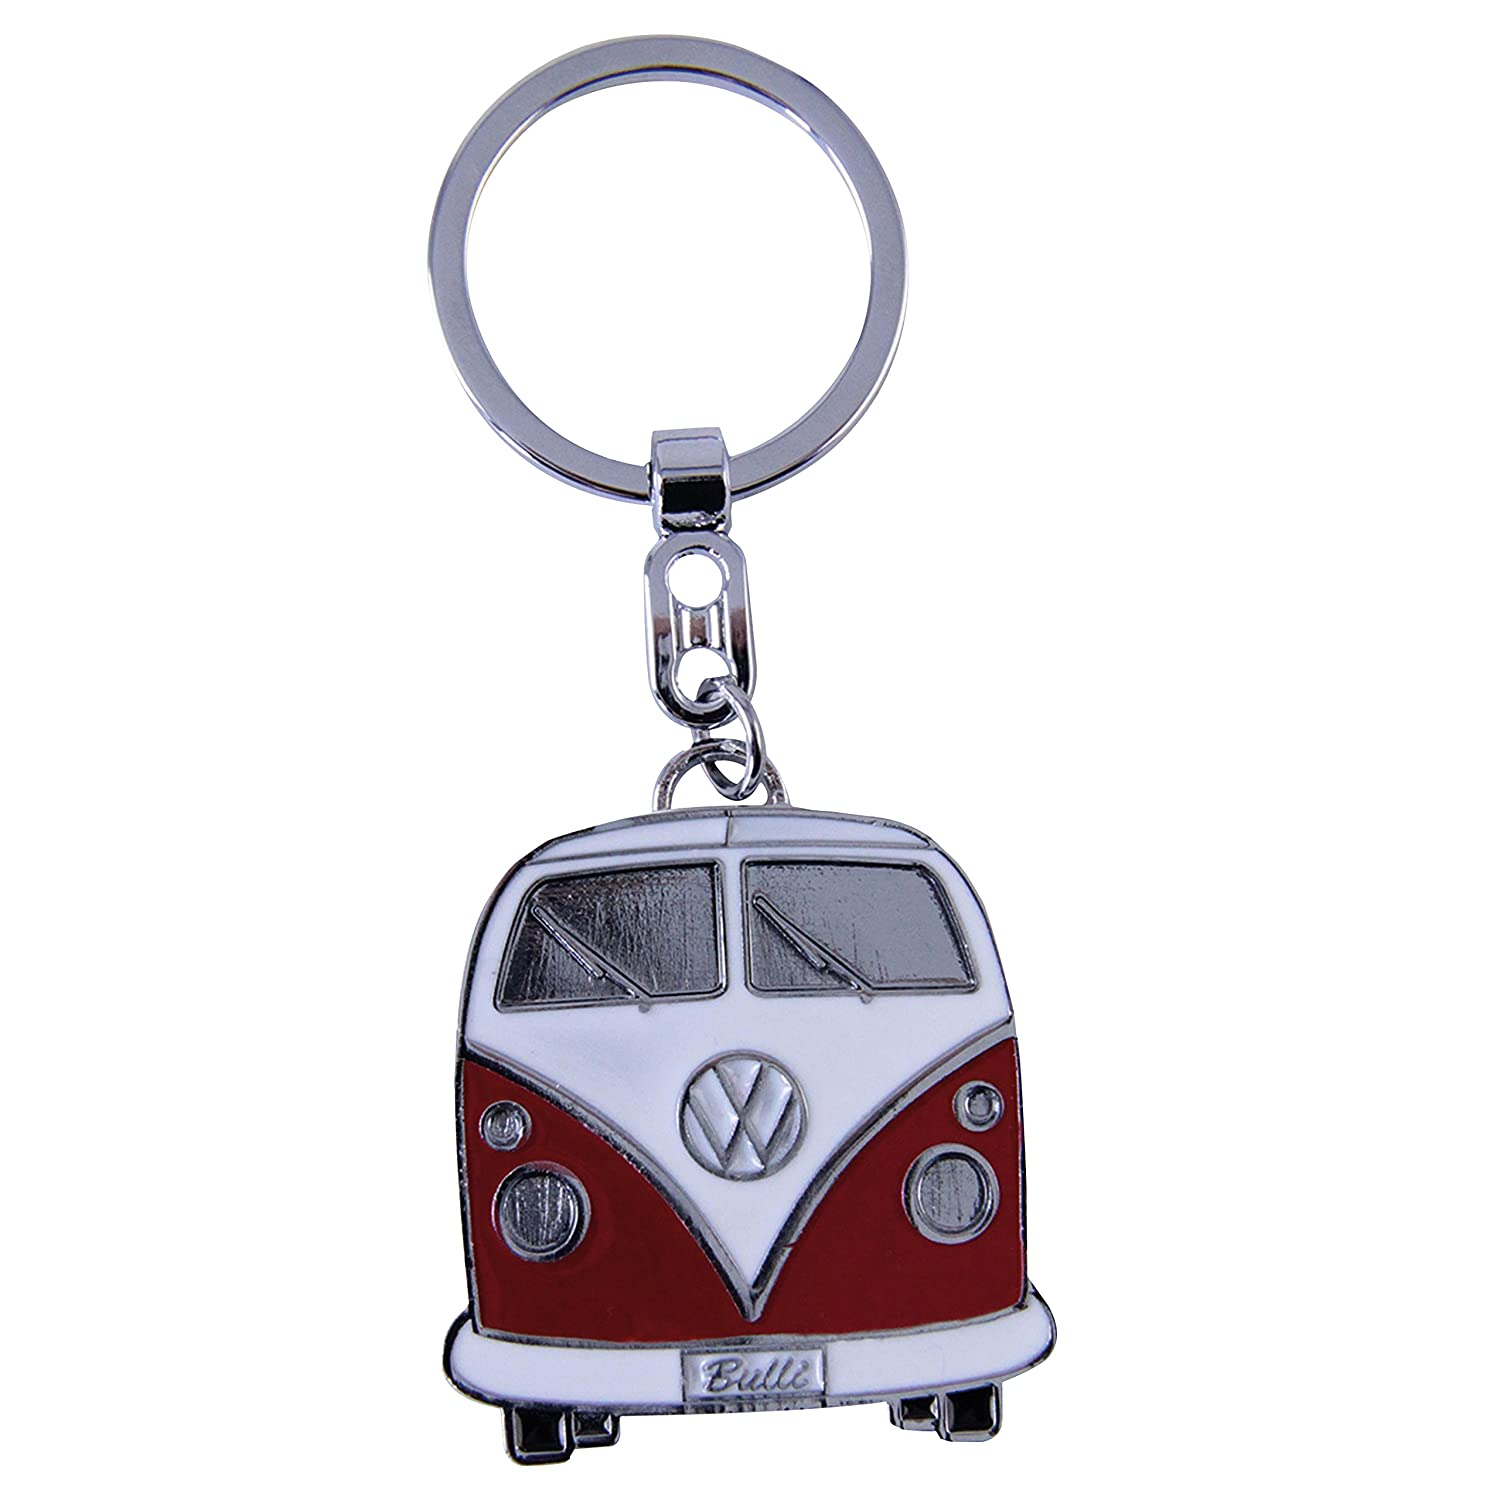 VW Collection by Brisa T1 Keyring Red Enesco BUKH01